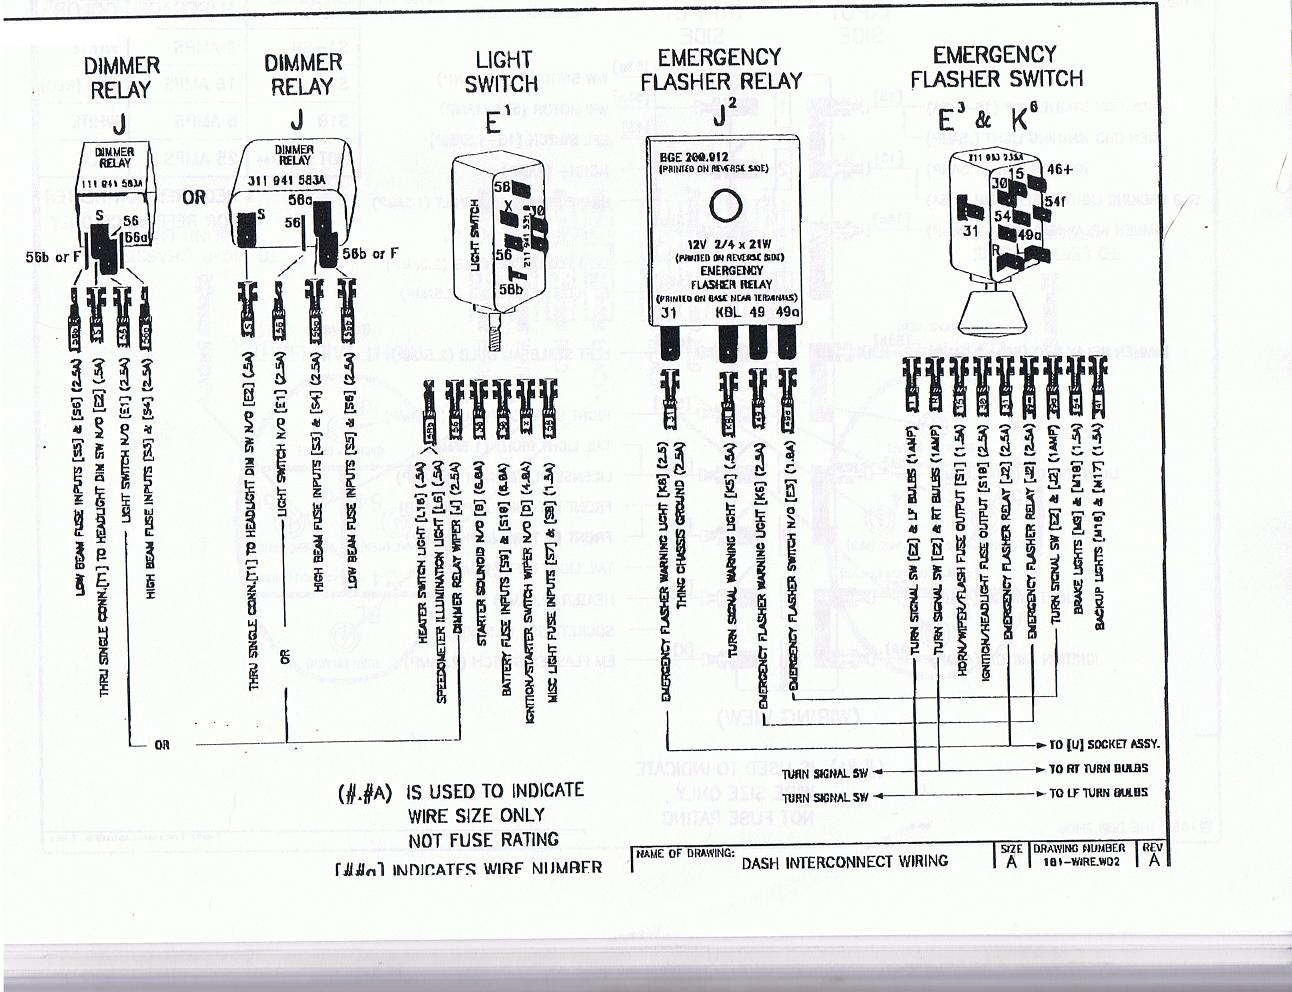 vw thing wiring wiring diagrams schematics 1974 VW Thing Wiring-Diagram and fuse box vw thing free download wiring diagram vw thing fuse box wiring diagrams schematics on suzuki verona fuse box for thesamba com thing vw thing wiring at Volkswagen Thing Wiring Harness